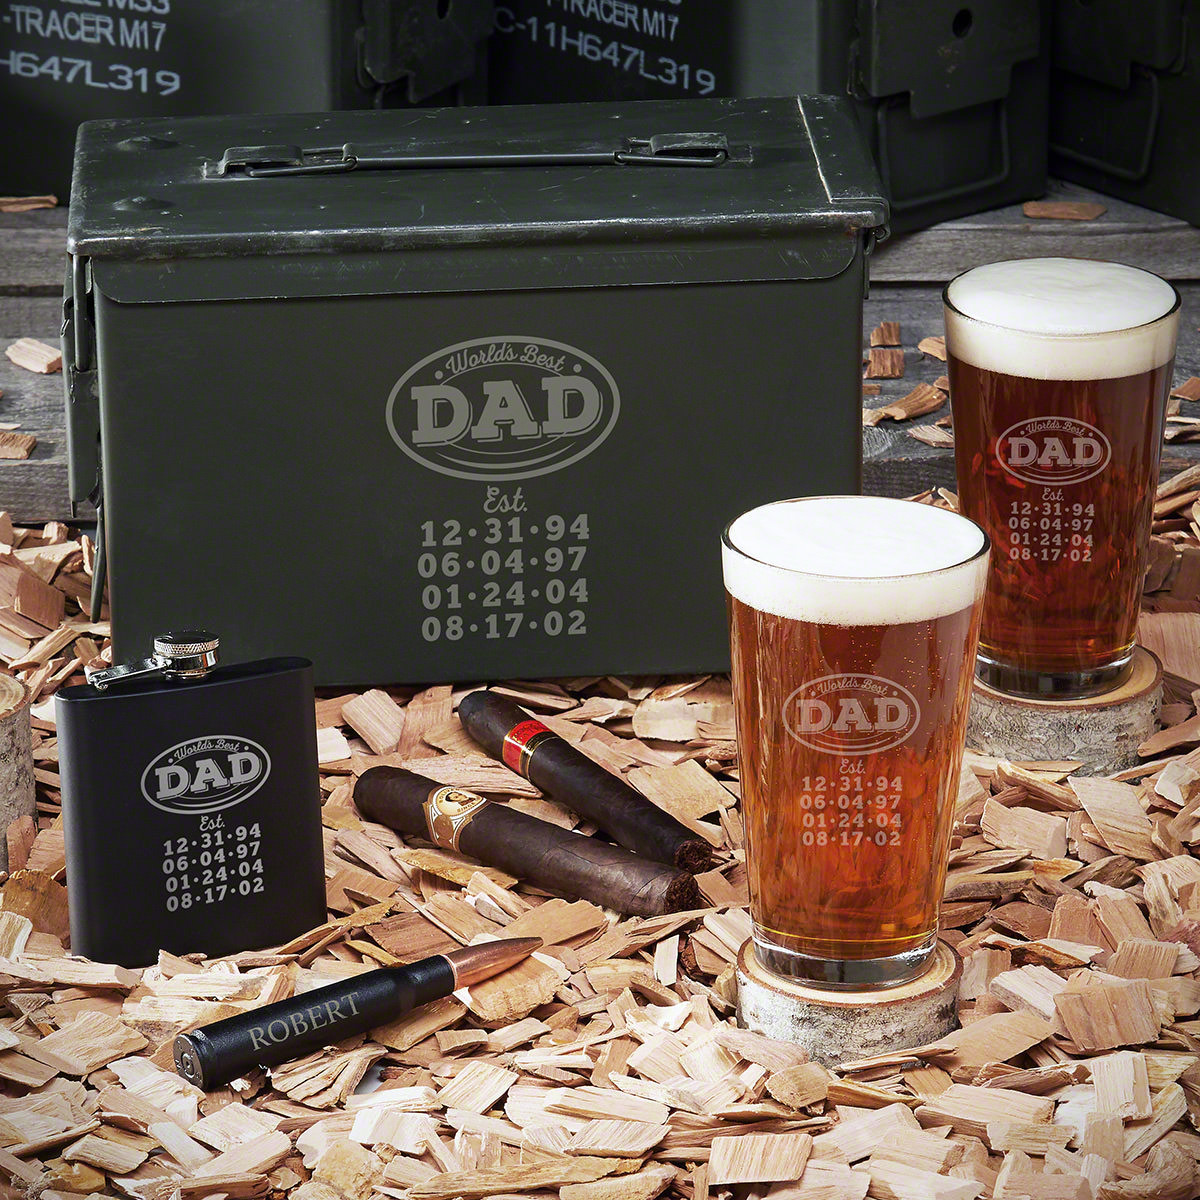 Your dad is impossible to shop for but still deserves the gift imaginable. Our custom ammo box set has everything your dad needs. The two matching pint glasses are the best way to enjoy any beer. The engraved 50-caliber bullet bottle opener can easily fit #best